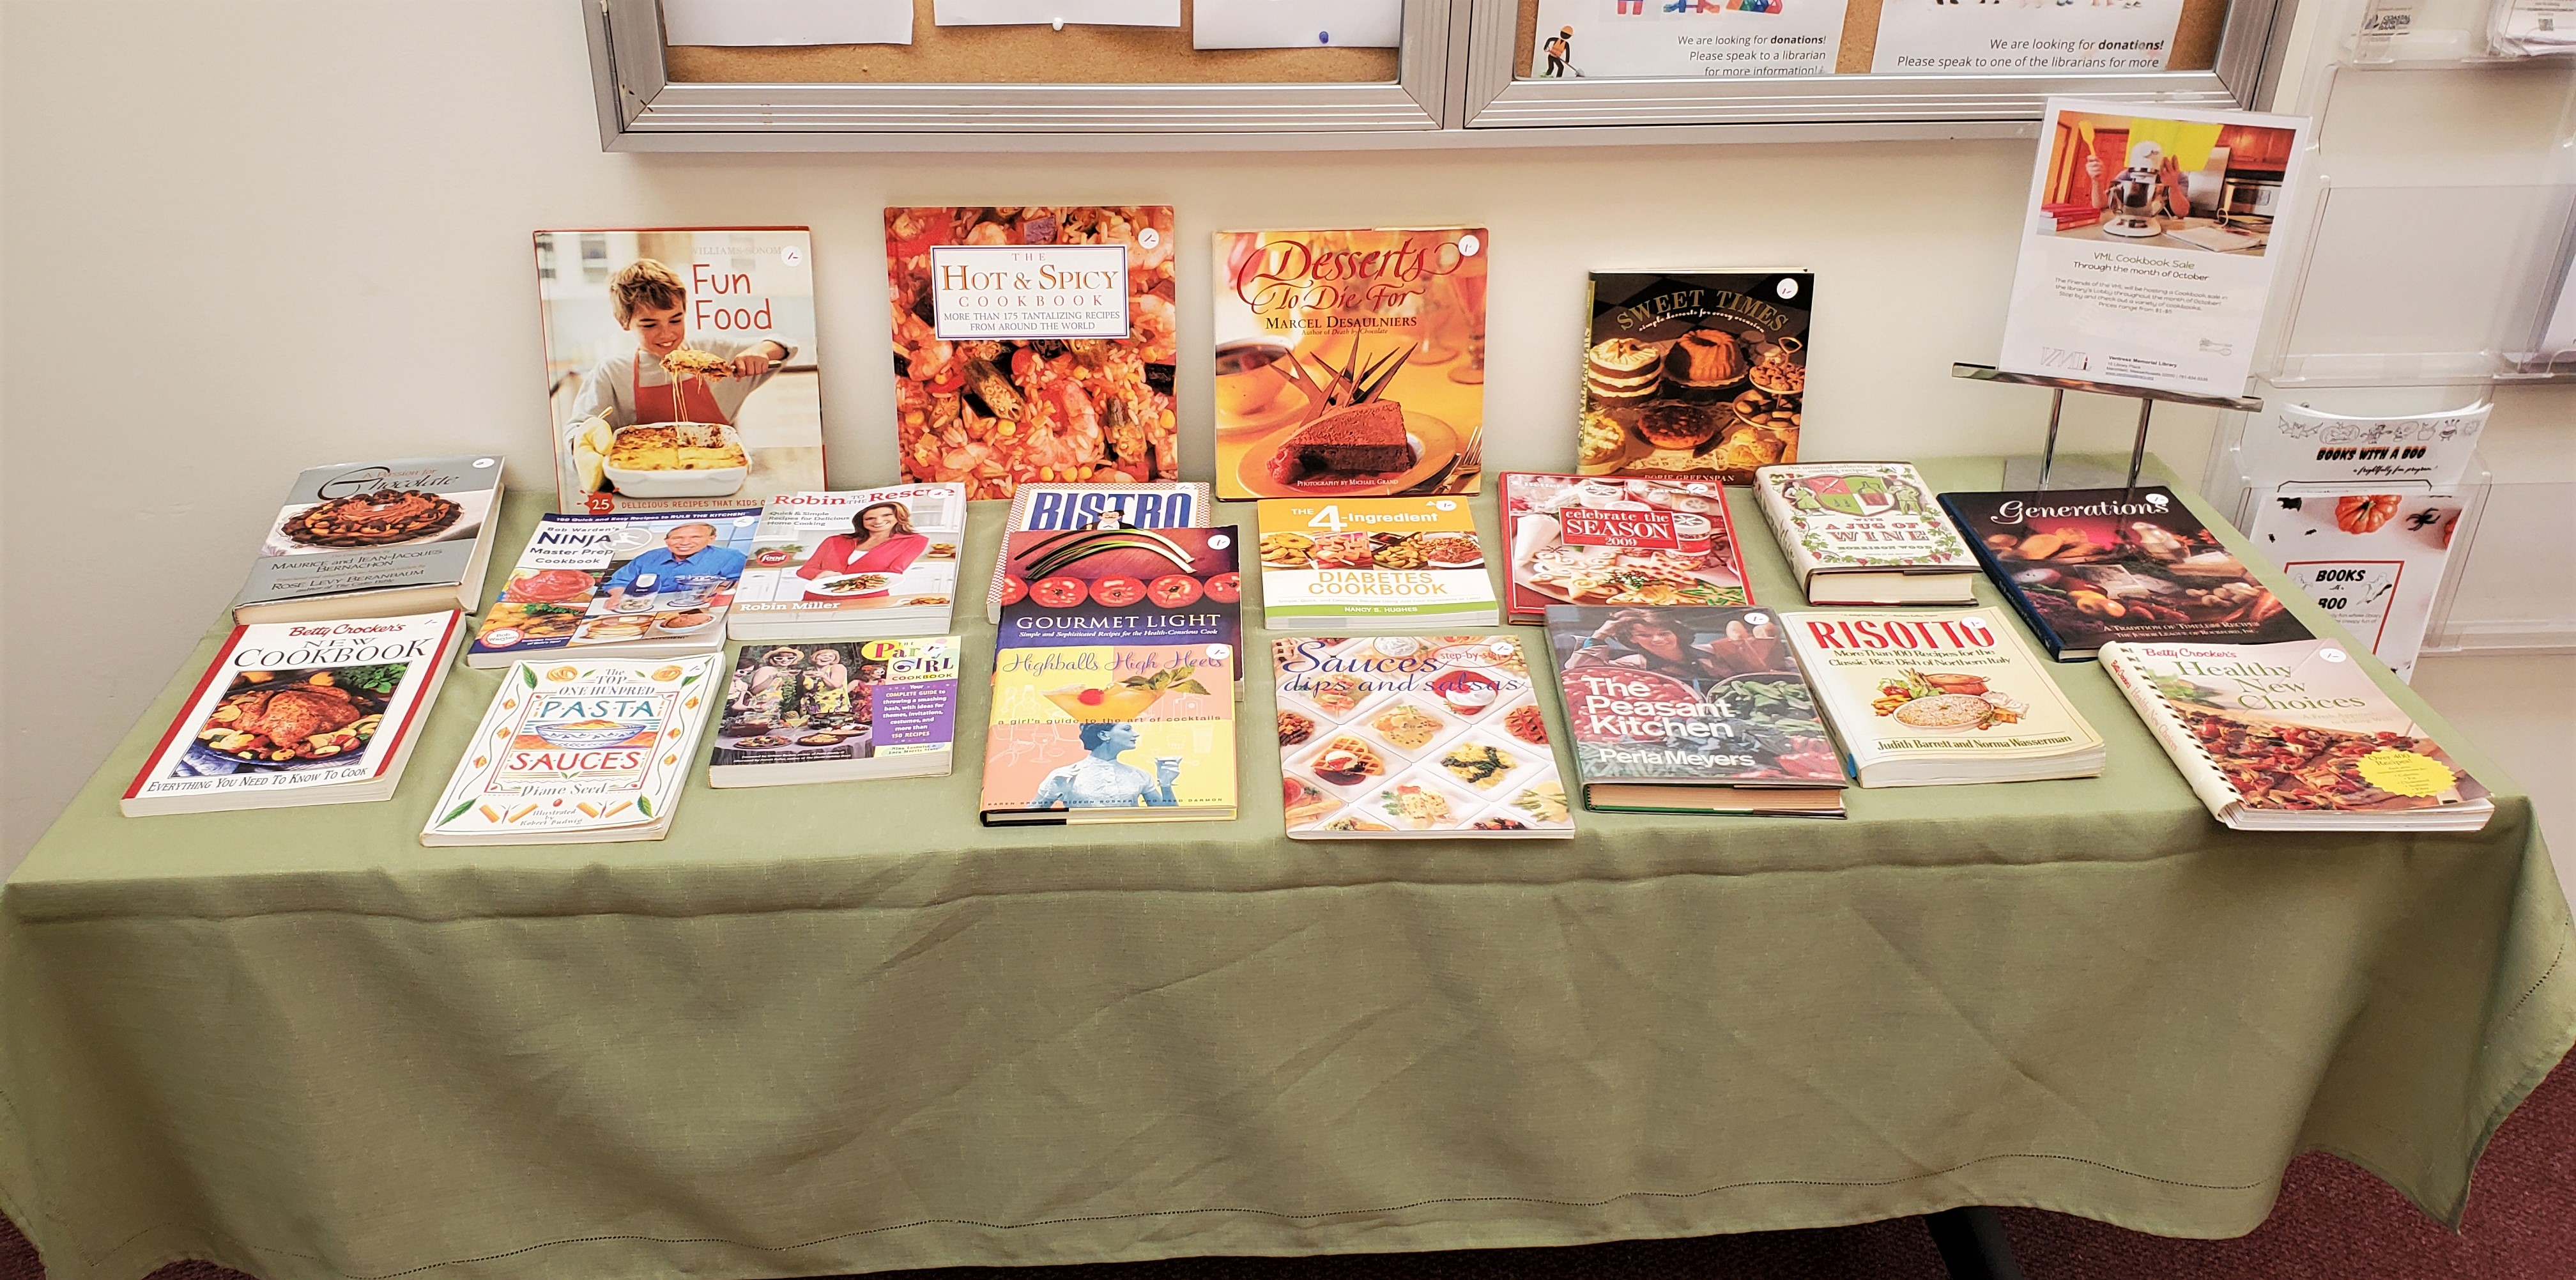 Photo of our cookbook sale: about 20 cookbooks displayed on a table.